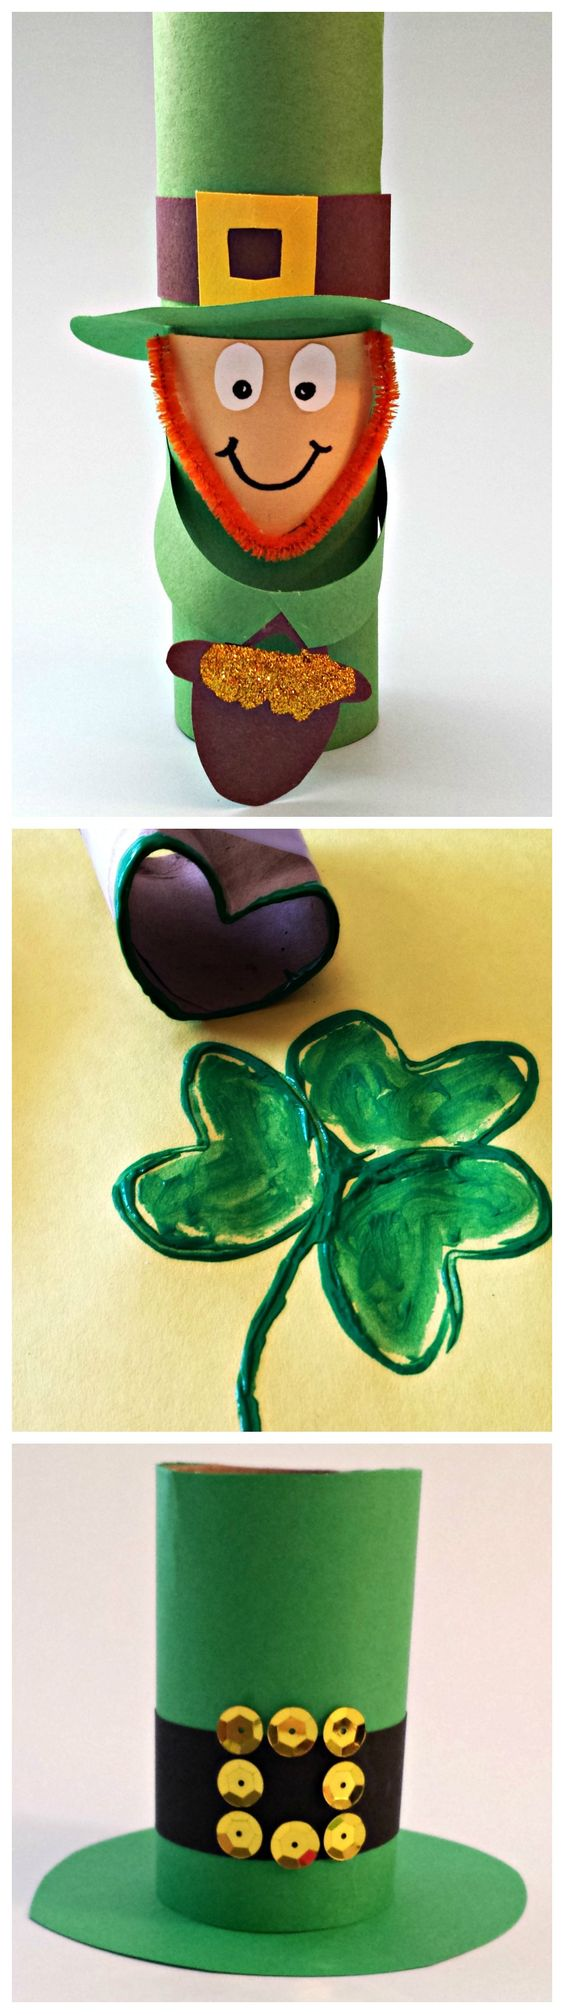 Easy st patrick 39 s day crafts for kids toilets for kids for St patrick day craft ideas